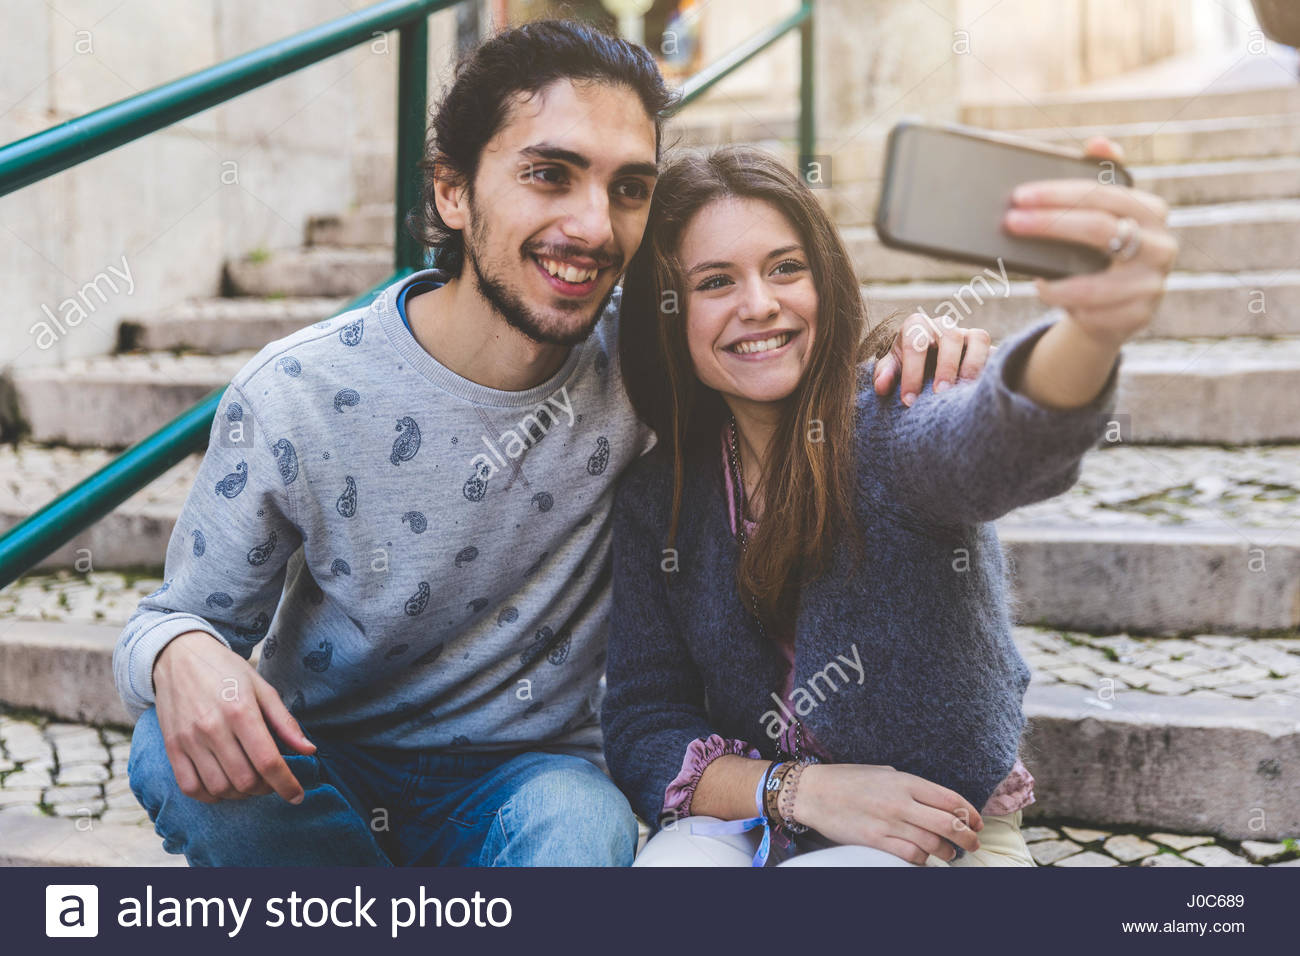 Young couple, sitting on steps, taking selfie with smartphone, Lisbon, Portugal Stock Photo